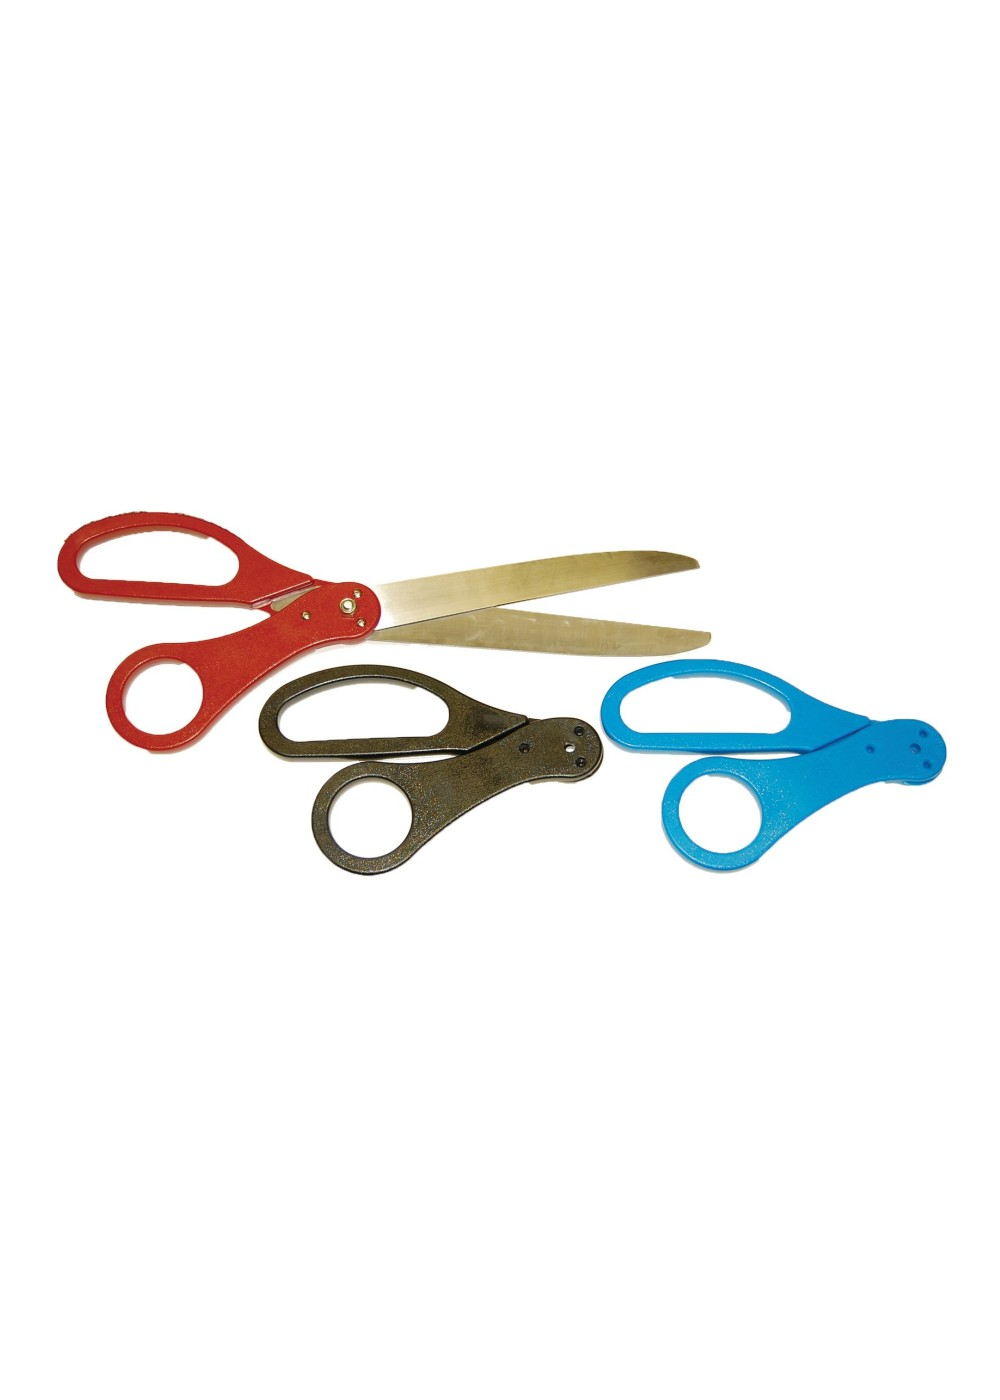 25 Inch Red Ribbon Cutting Scissors And Black And Blue Changeable Handles